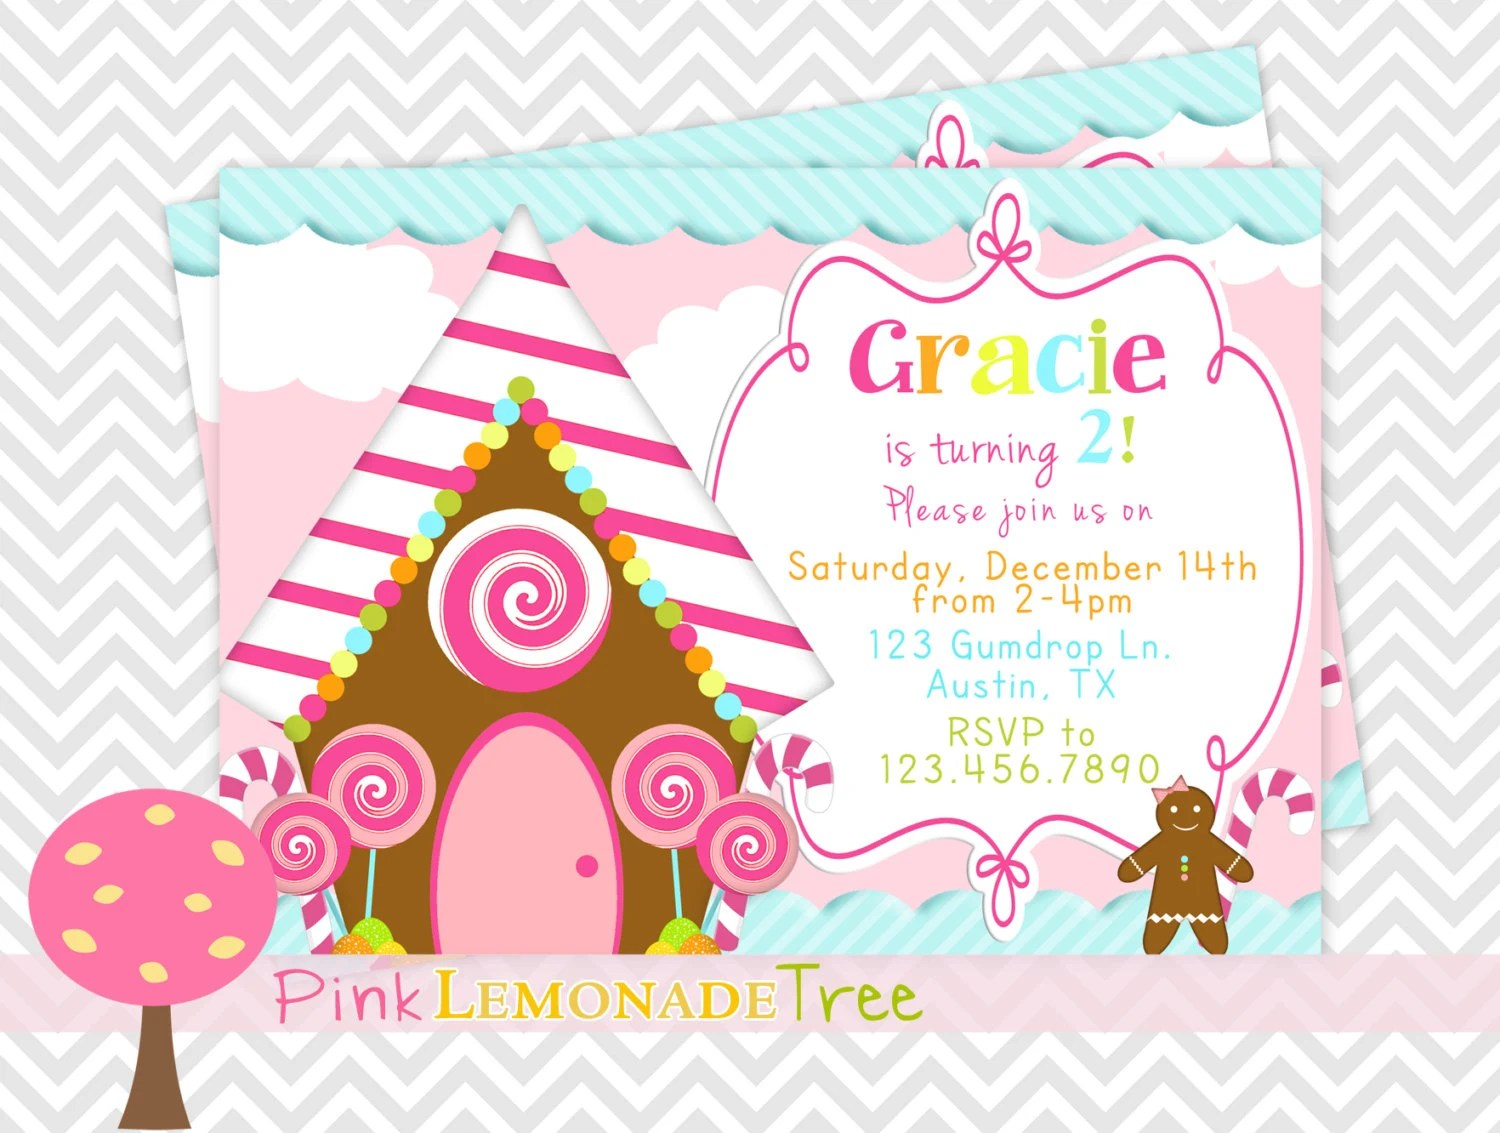 Gingerbread House Birthday Party Invitation Cute Christmas